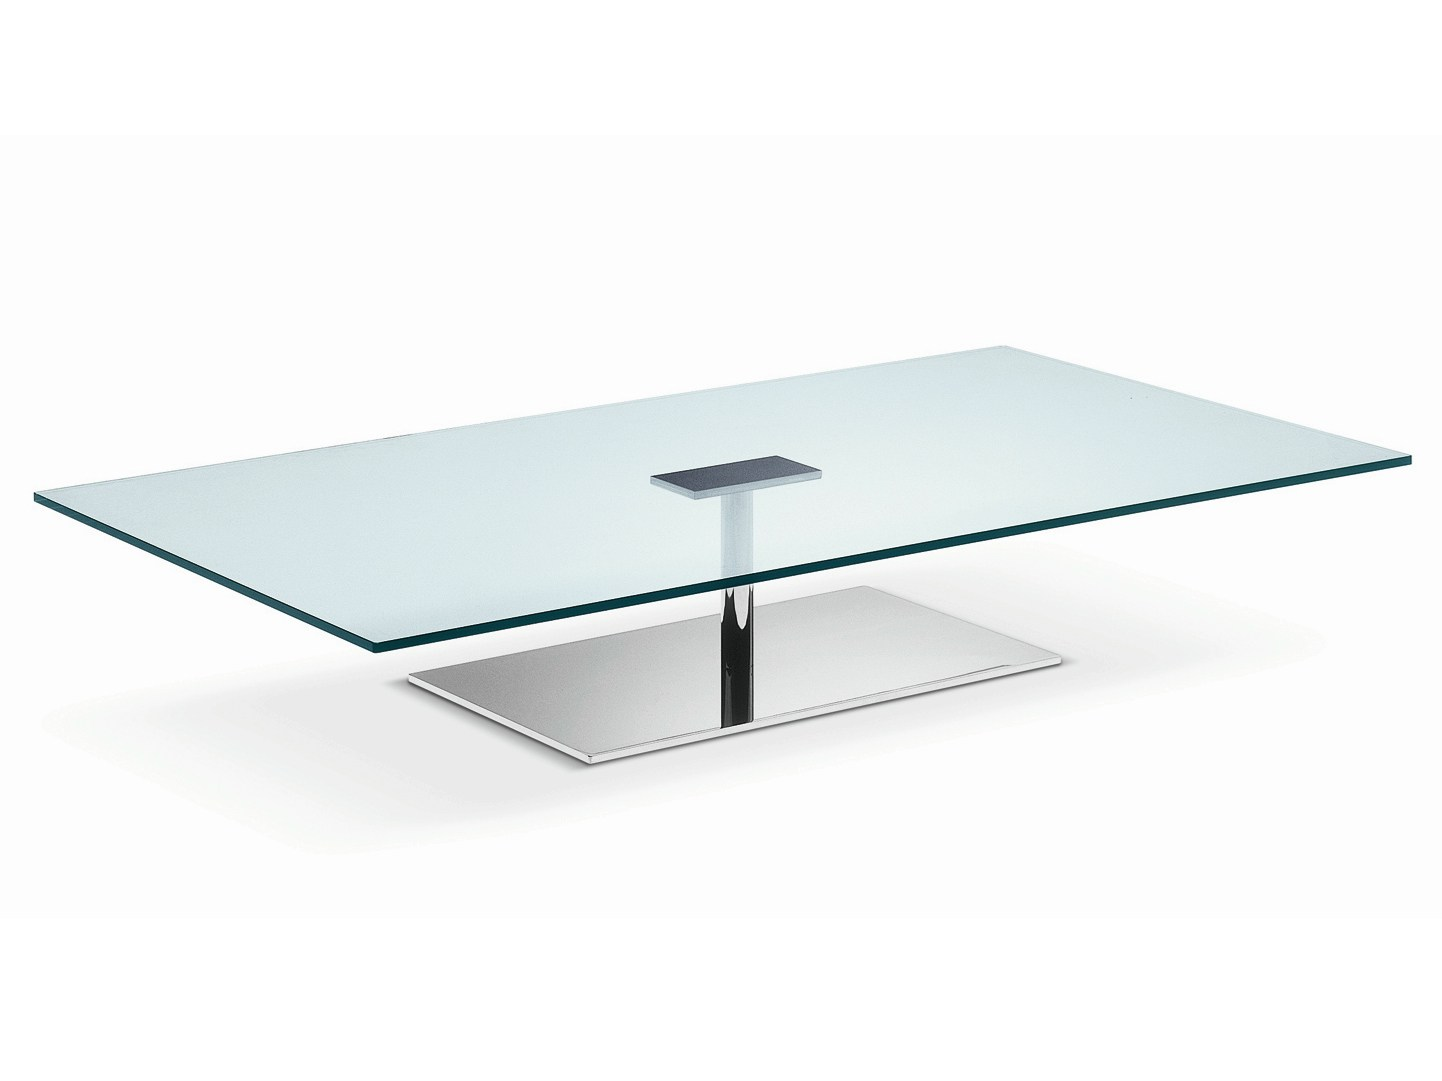 Low Glass Coffee Table Three Versions Available With Round Rectangular Or Square Base And Top Tables Interior Modern (View 9 of 10)